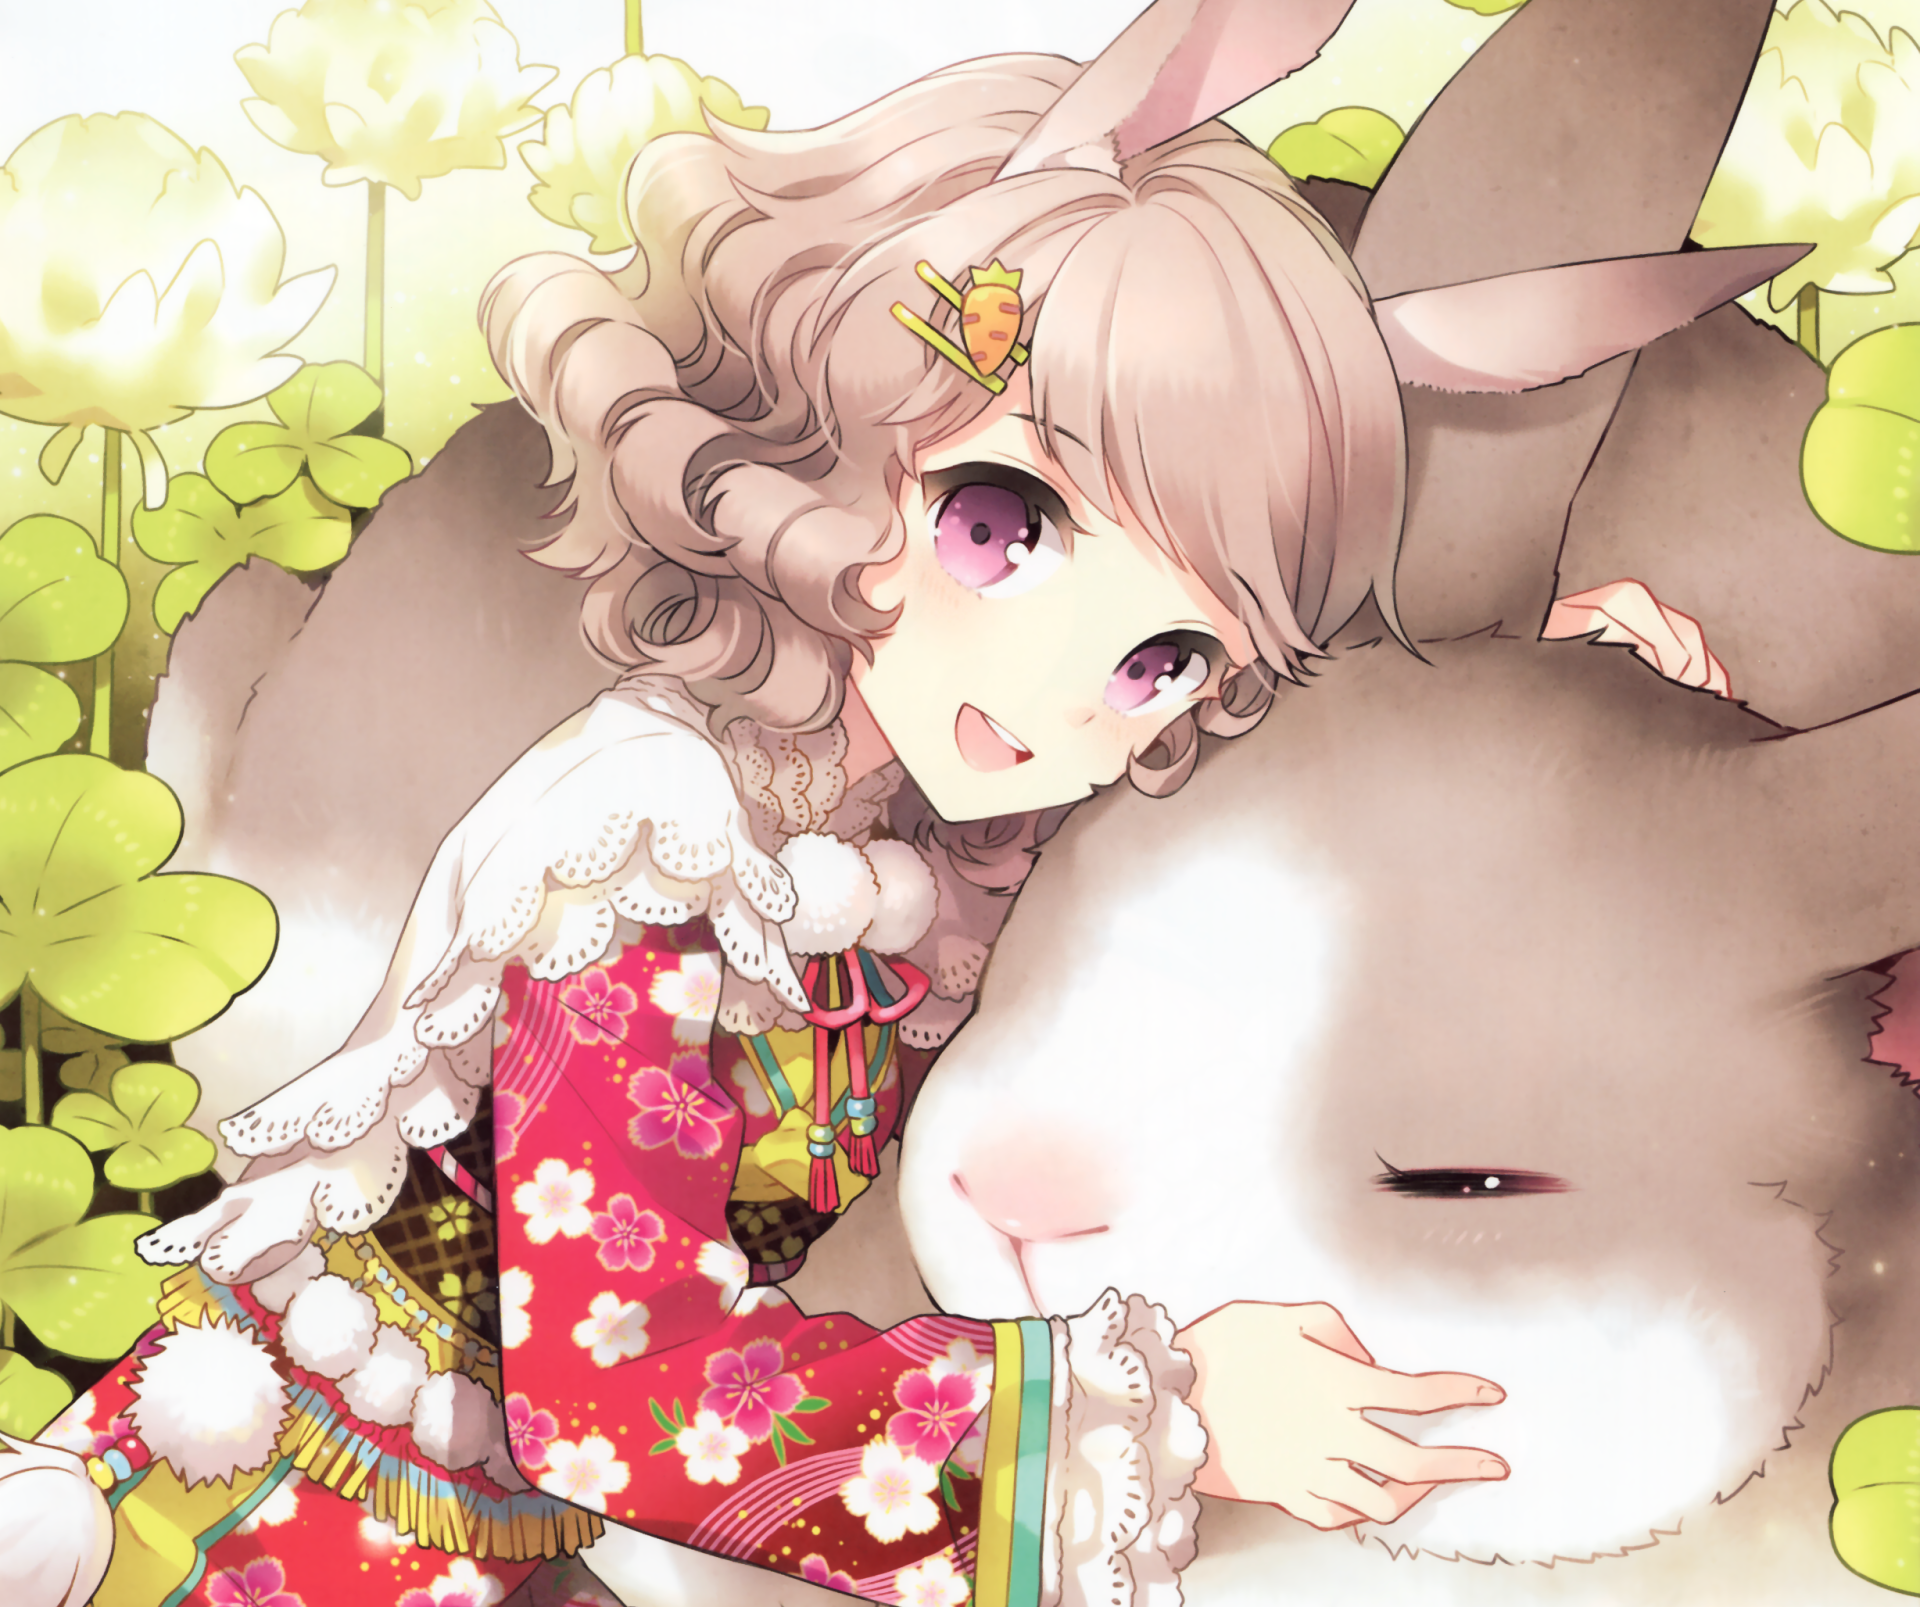 Anime - Original  Bunny Bunny Ears Clover Purple Eyes Blonde Short Hair Smile Blush Kimono Carrot Dandelion Wallpaper